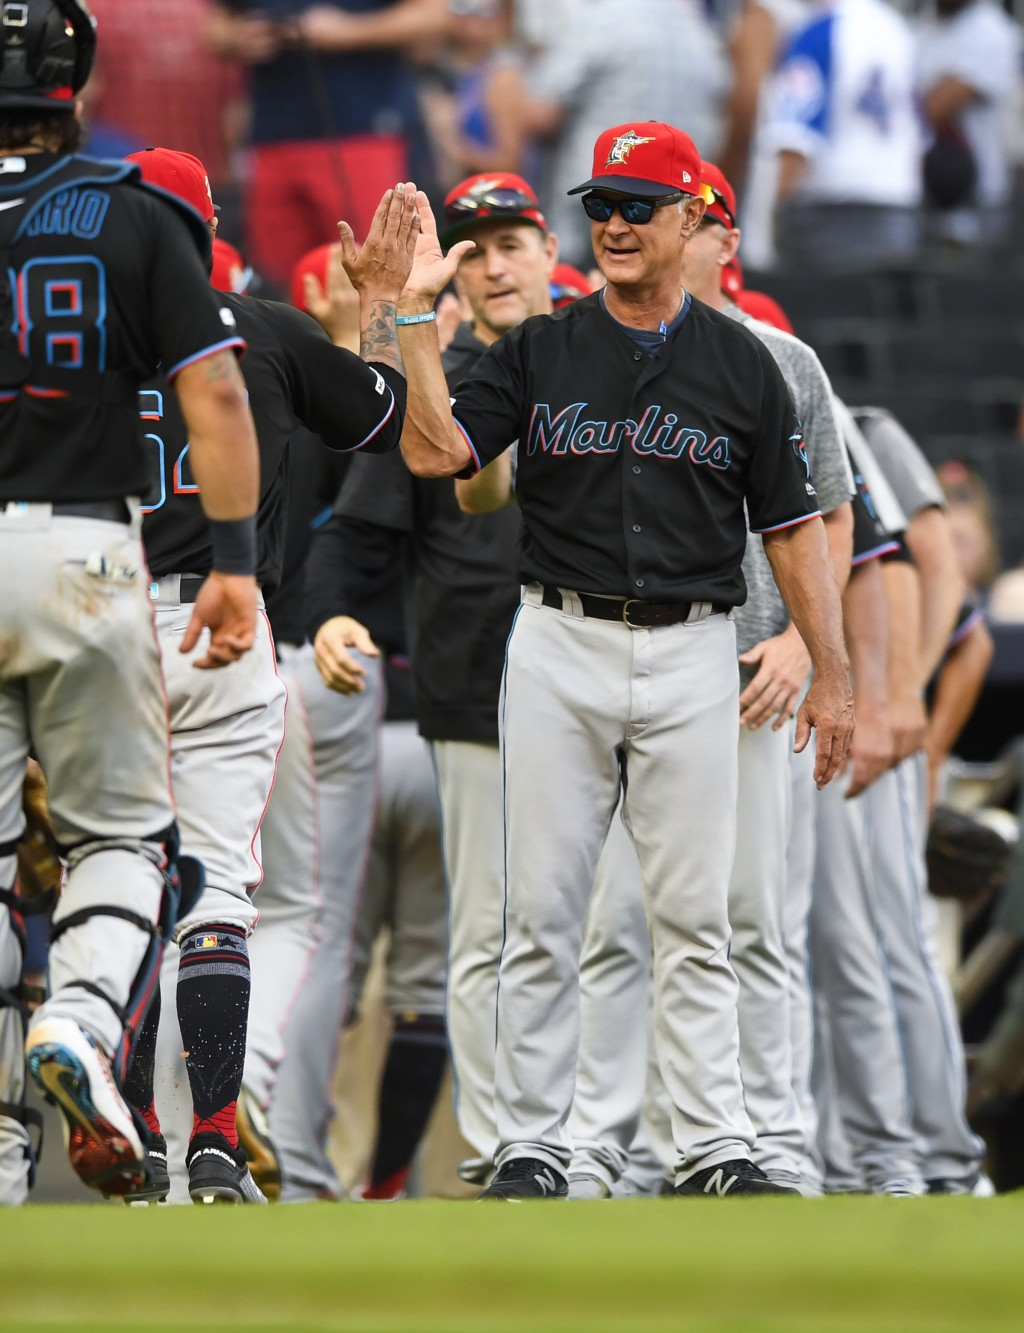 Miami Marlins manager Don Mattingly congratulates players as they come off the field after a baseball game against the Atlanta Braves, Saturday, July ...